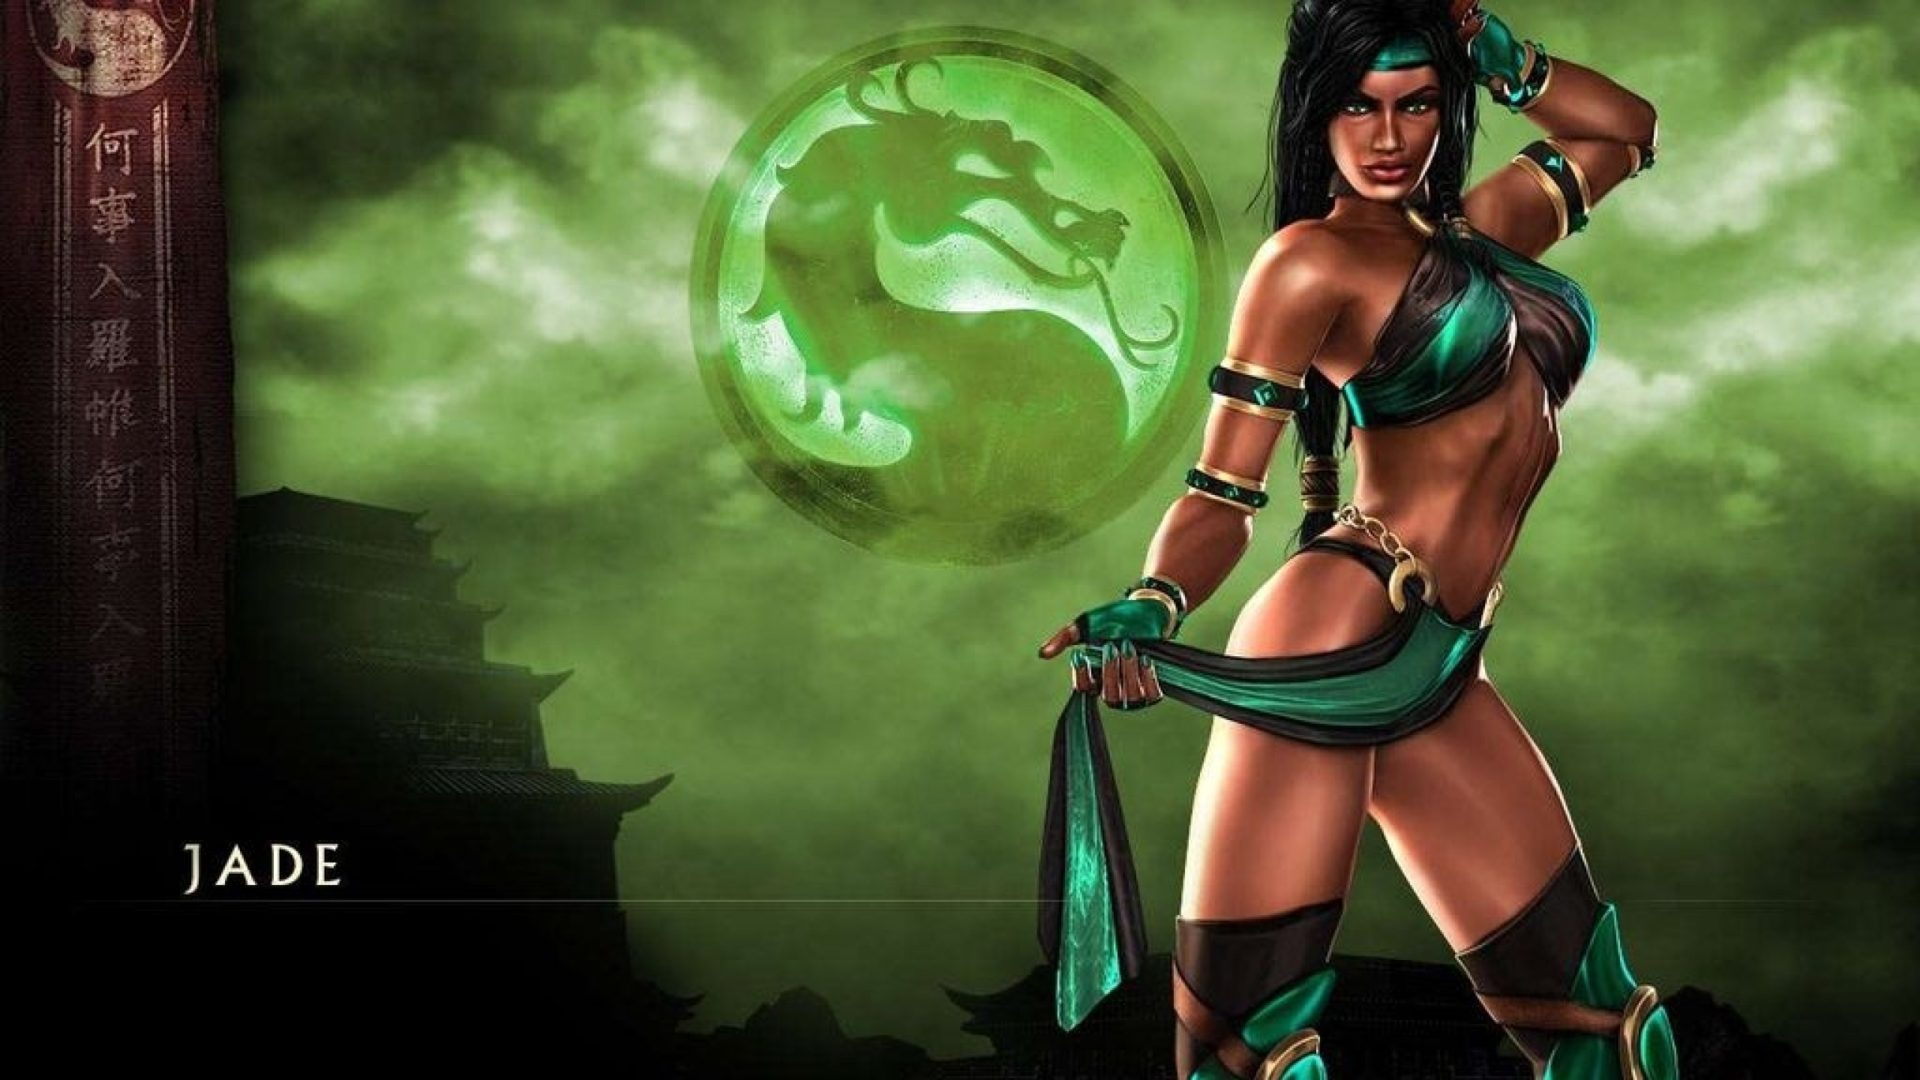 Video Games Mortal Kombat Jade Mortal Kombat Mortal Kombat